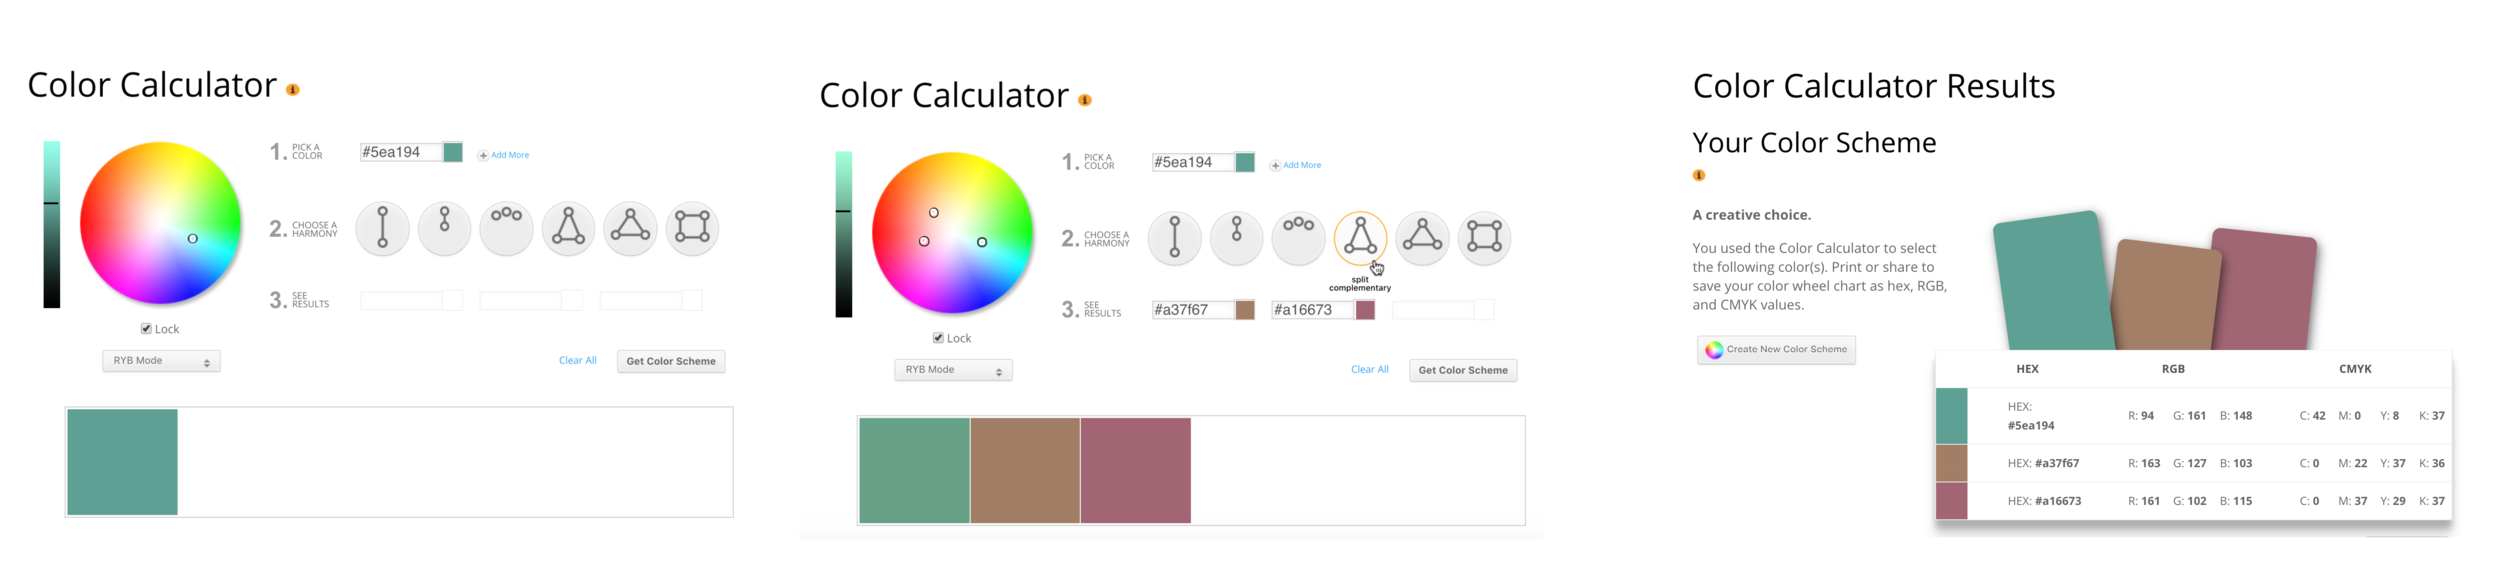 color-calculator-tool.png